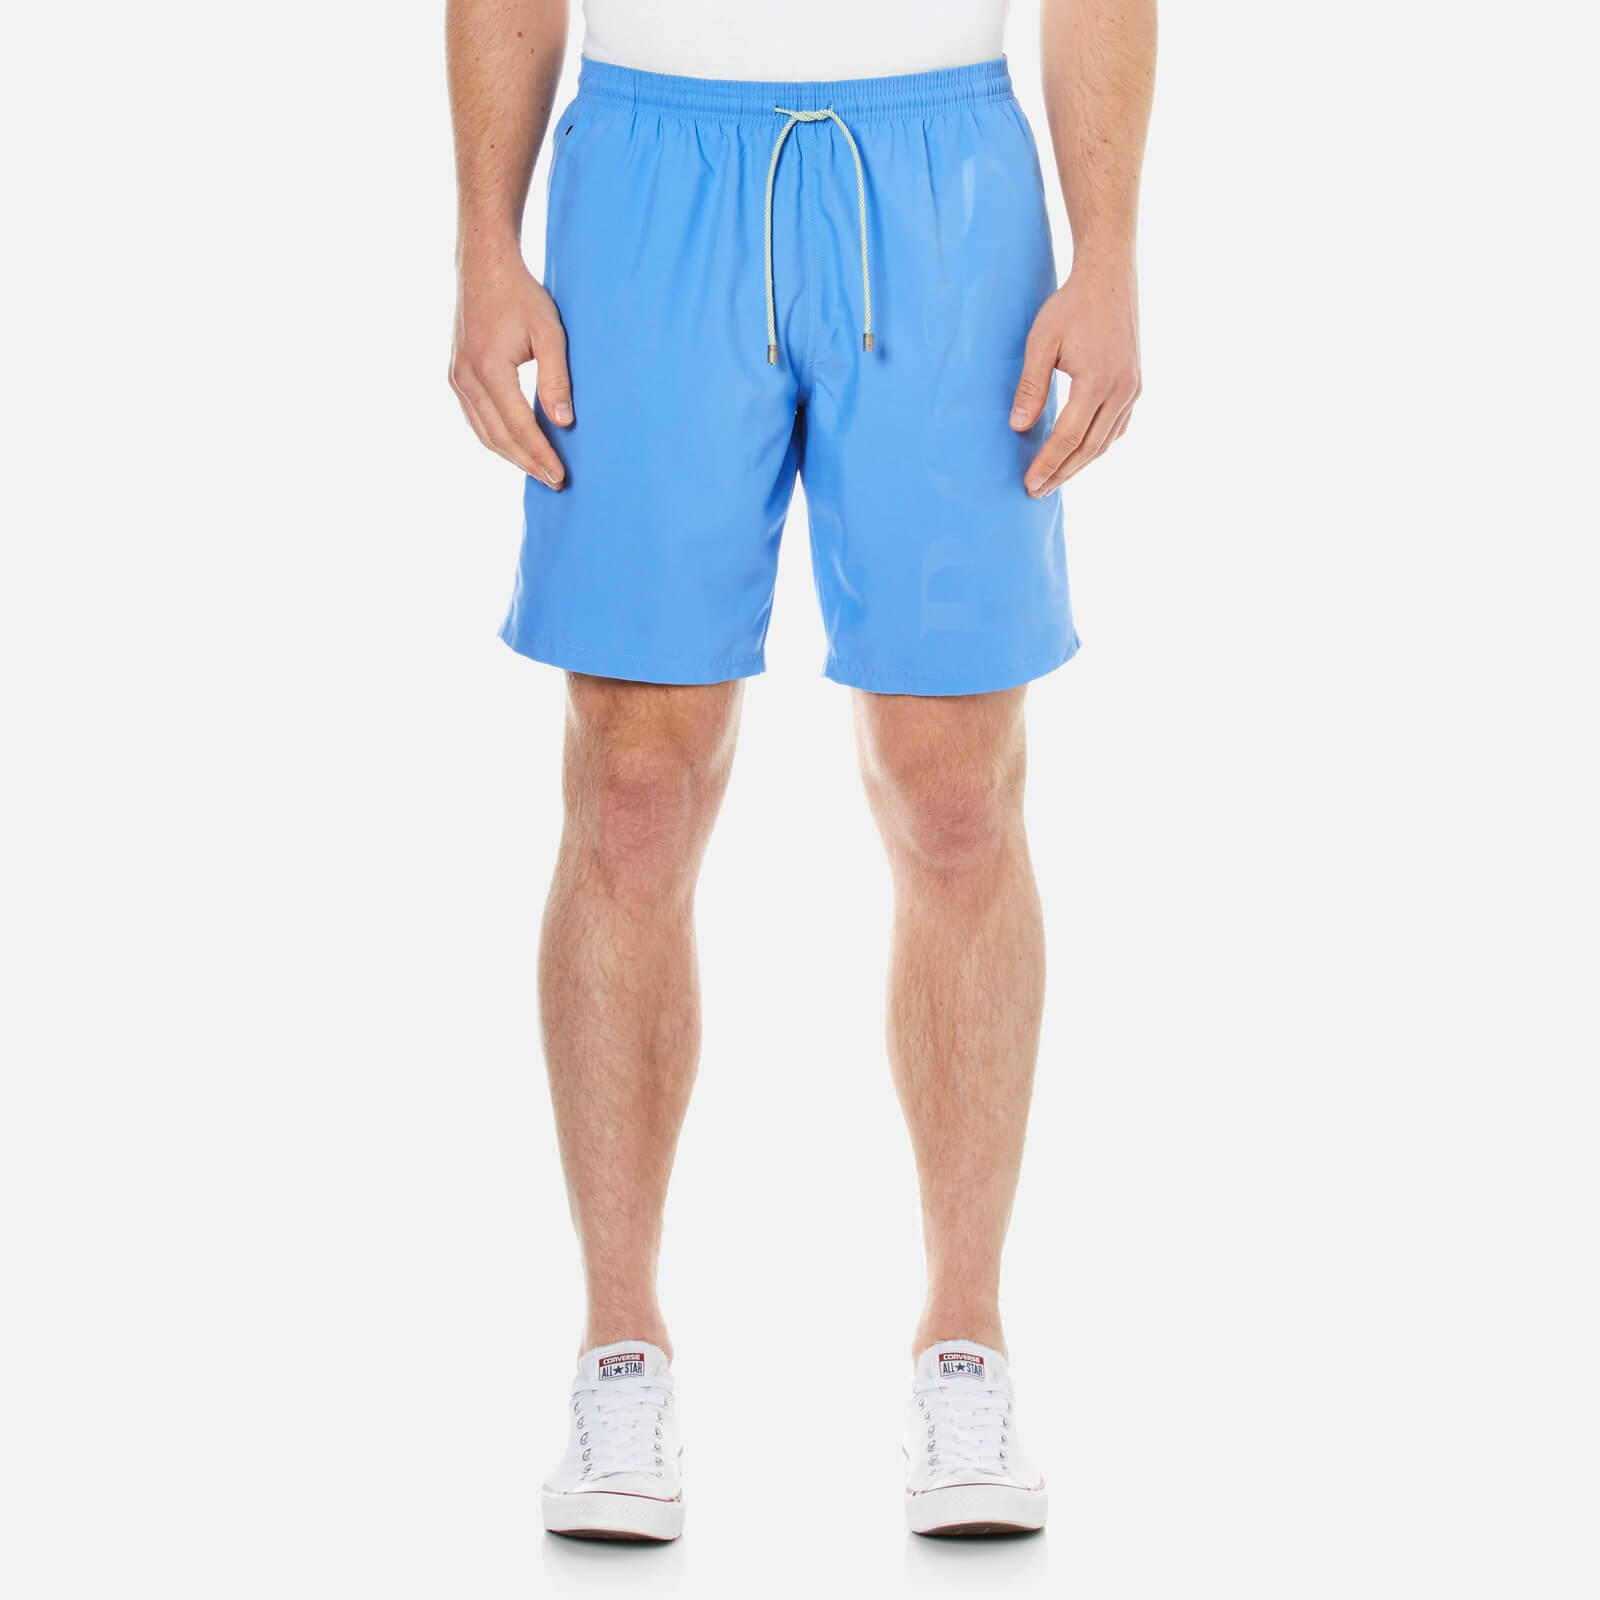 41b7926112 BOSS Hugo Boss Men's Orca Swim Shorts - Blue - Free UK Delivery over £50